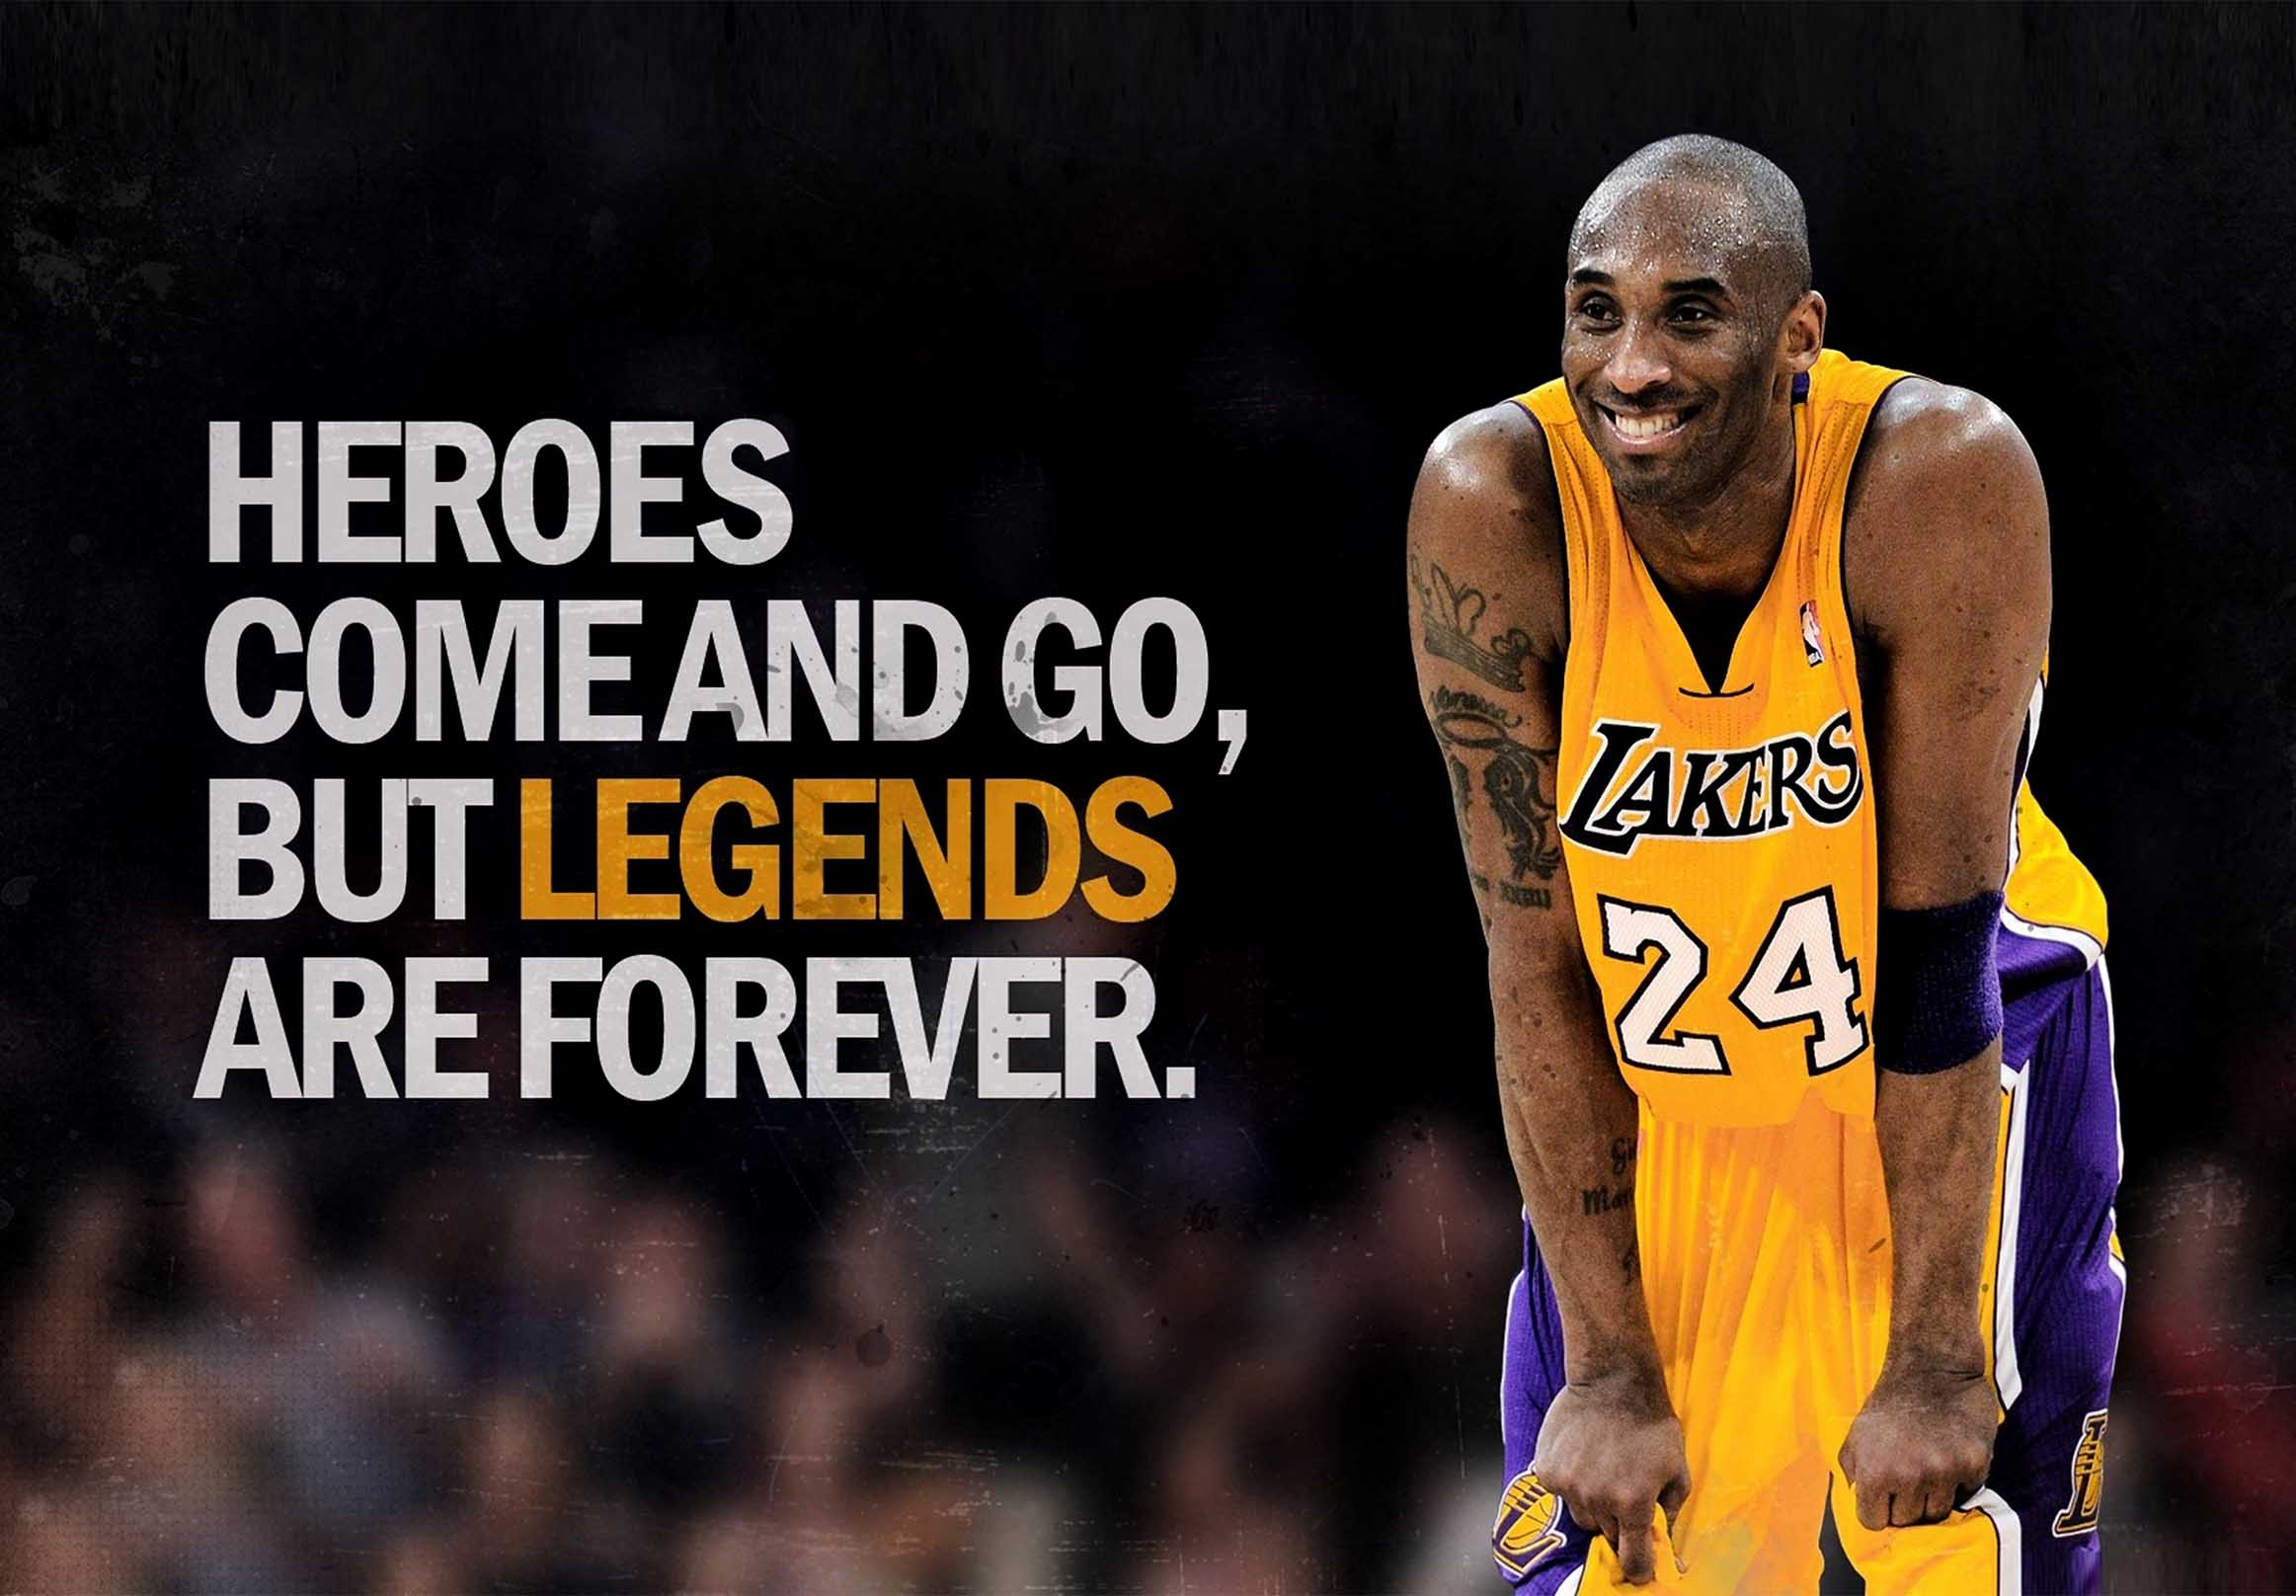 L.A. Lakers Kobe Bryant Legends Are Forever Canvas Tablo (Nba-canvas-legendsforever)